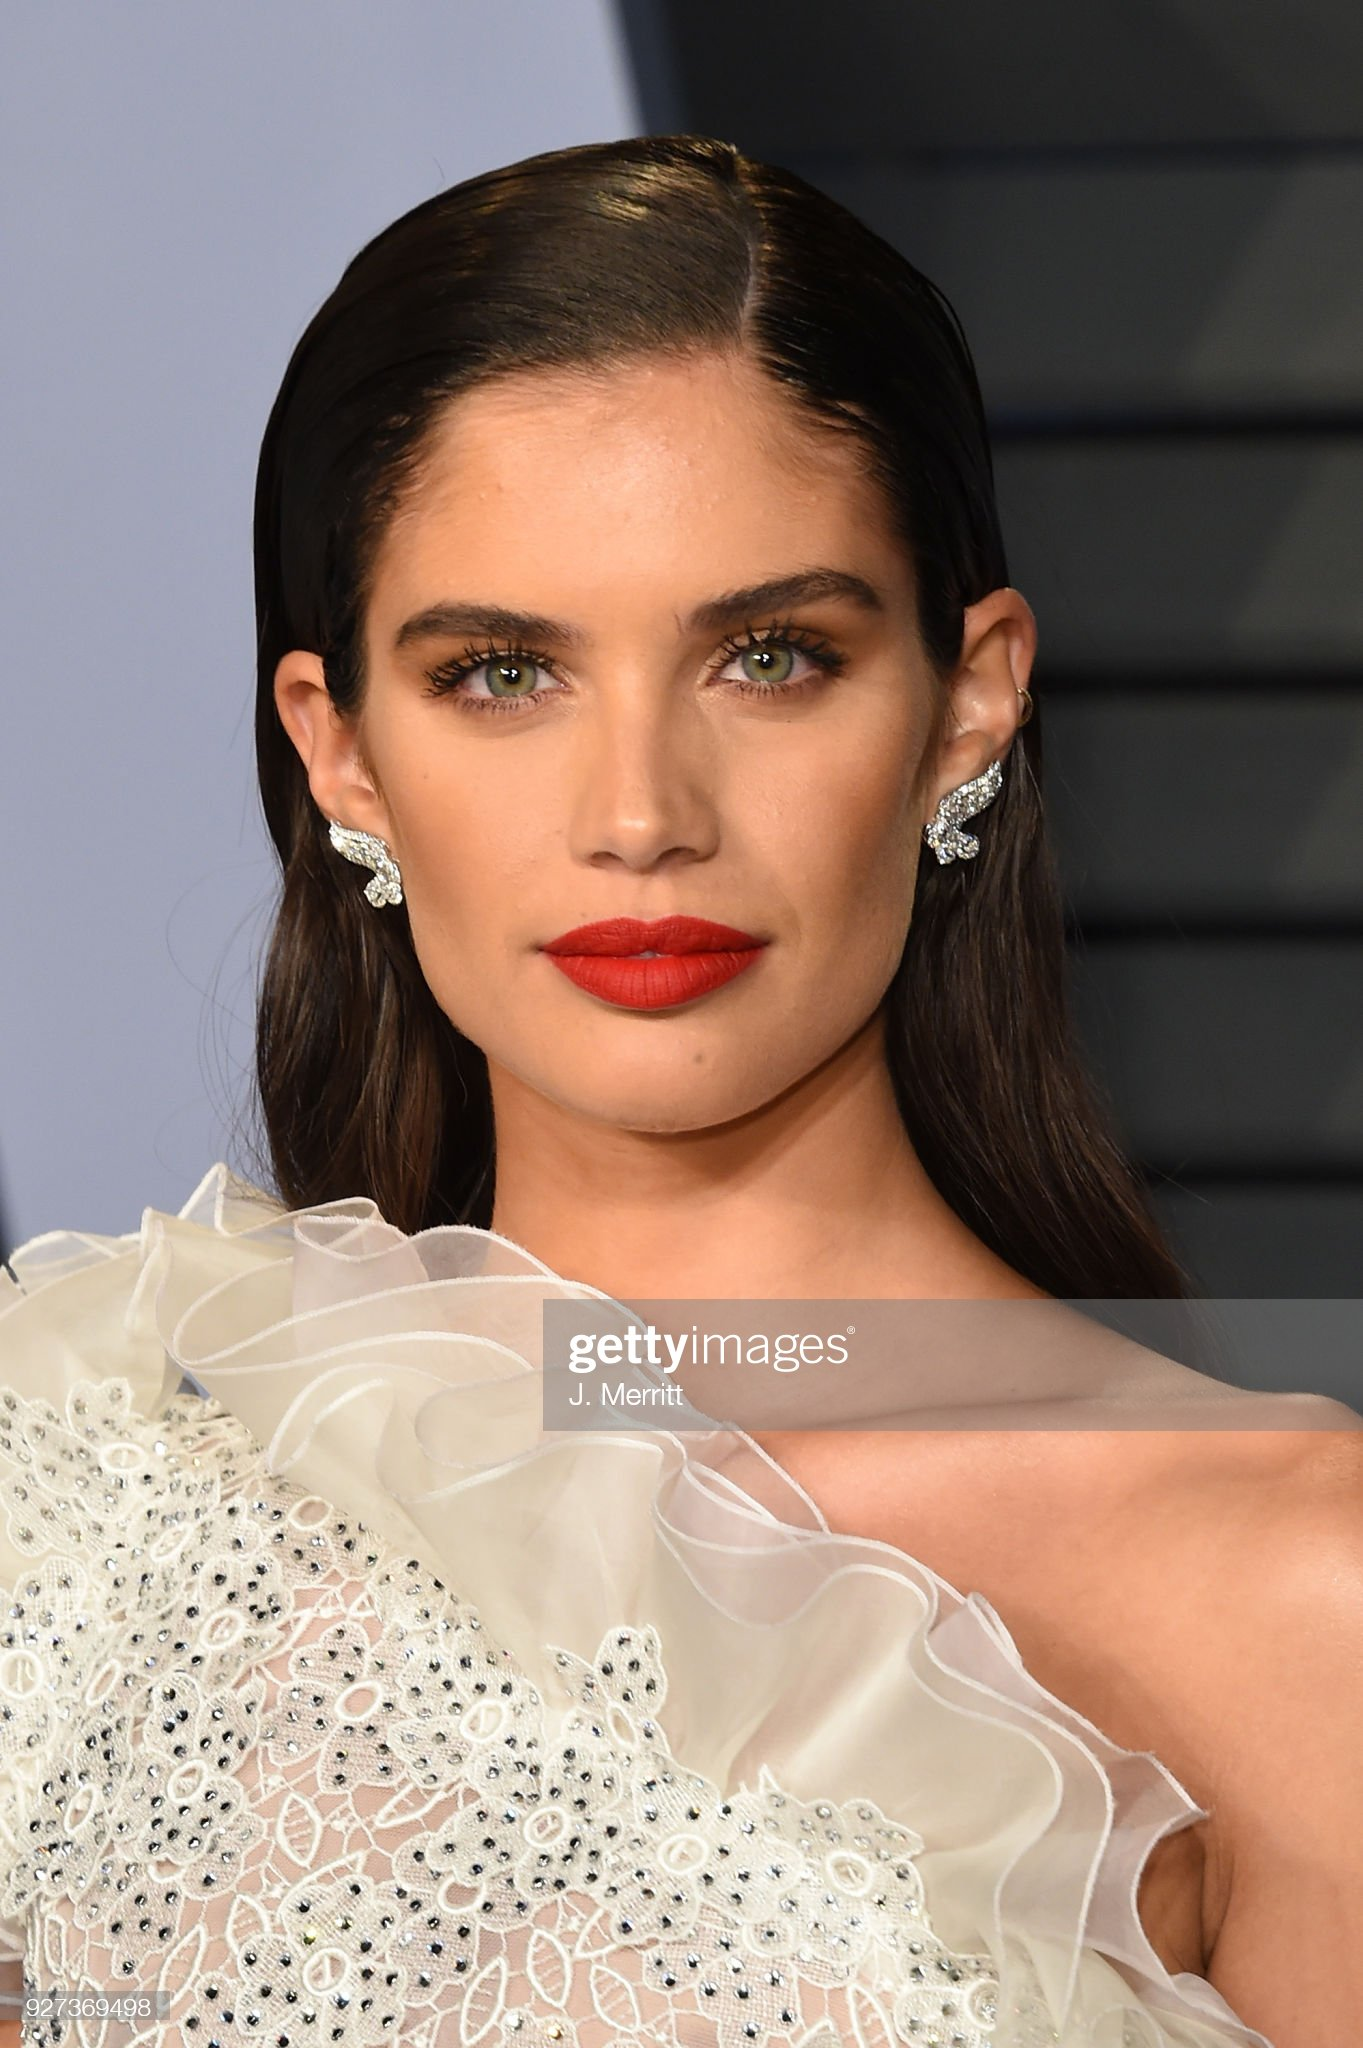 Sara Sampaio (galería de fotos) - pictures Sara-sampaio-attends-the-2018-vanity-fair-oscar-party-hosted-by-at-picture-id927369498?s=2048x2048